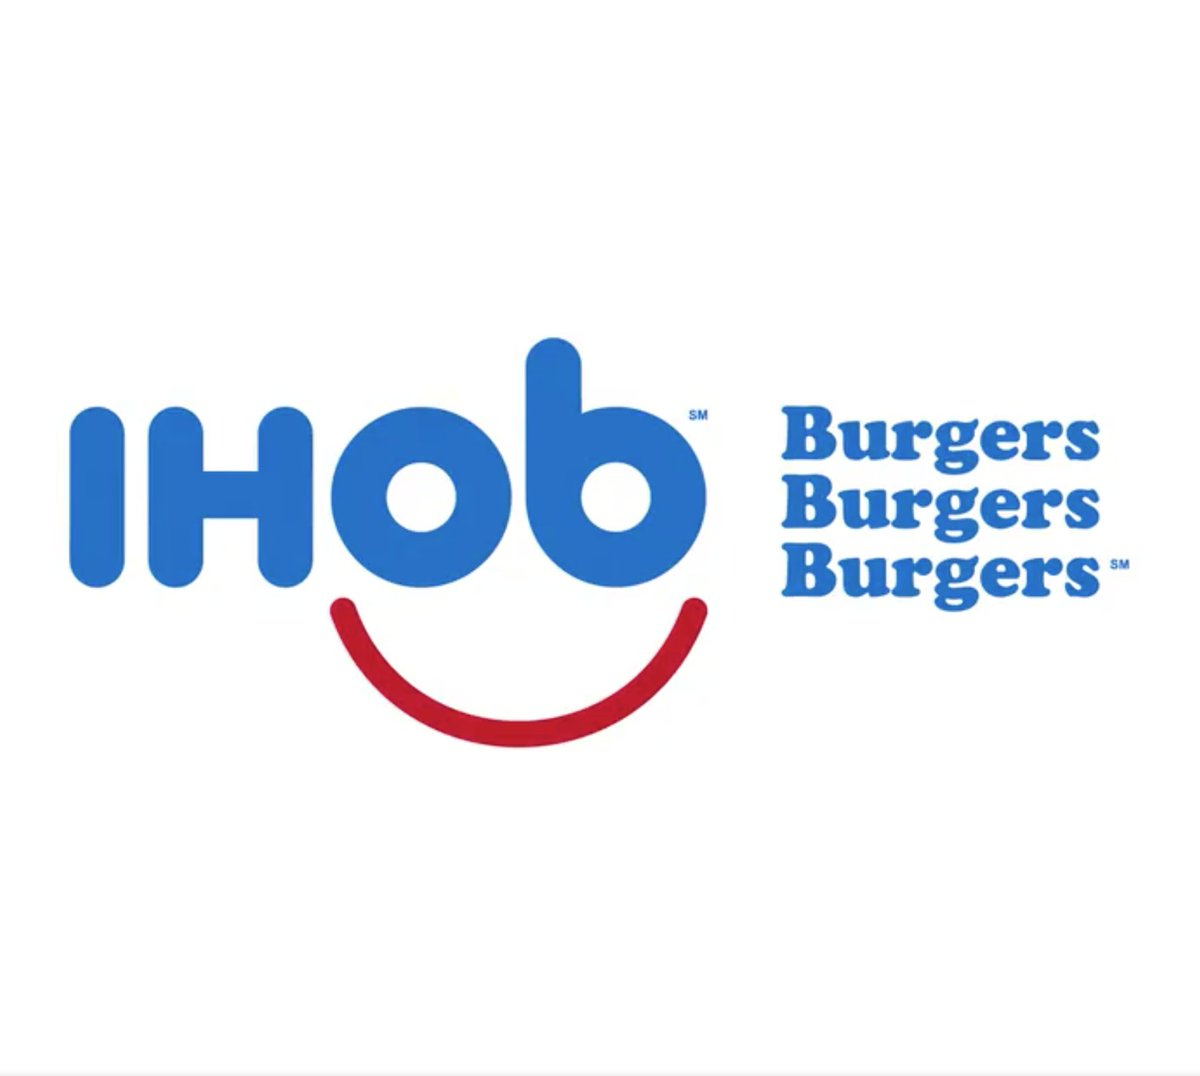 The wait is over. @IHOb just revealed what the 'b' in its new name stands for: Burgers https://t.co/phoLrE0cuZ